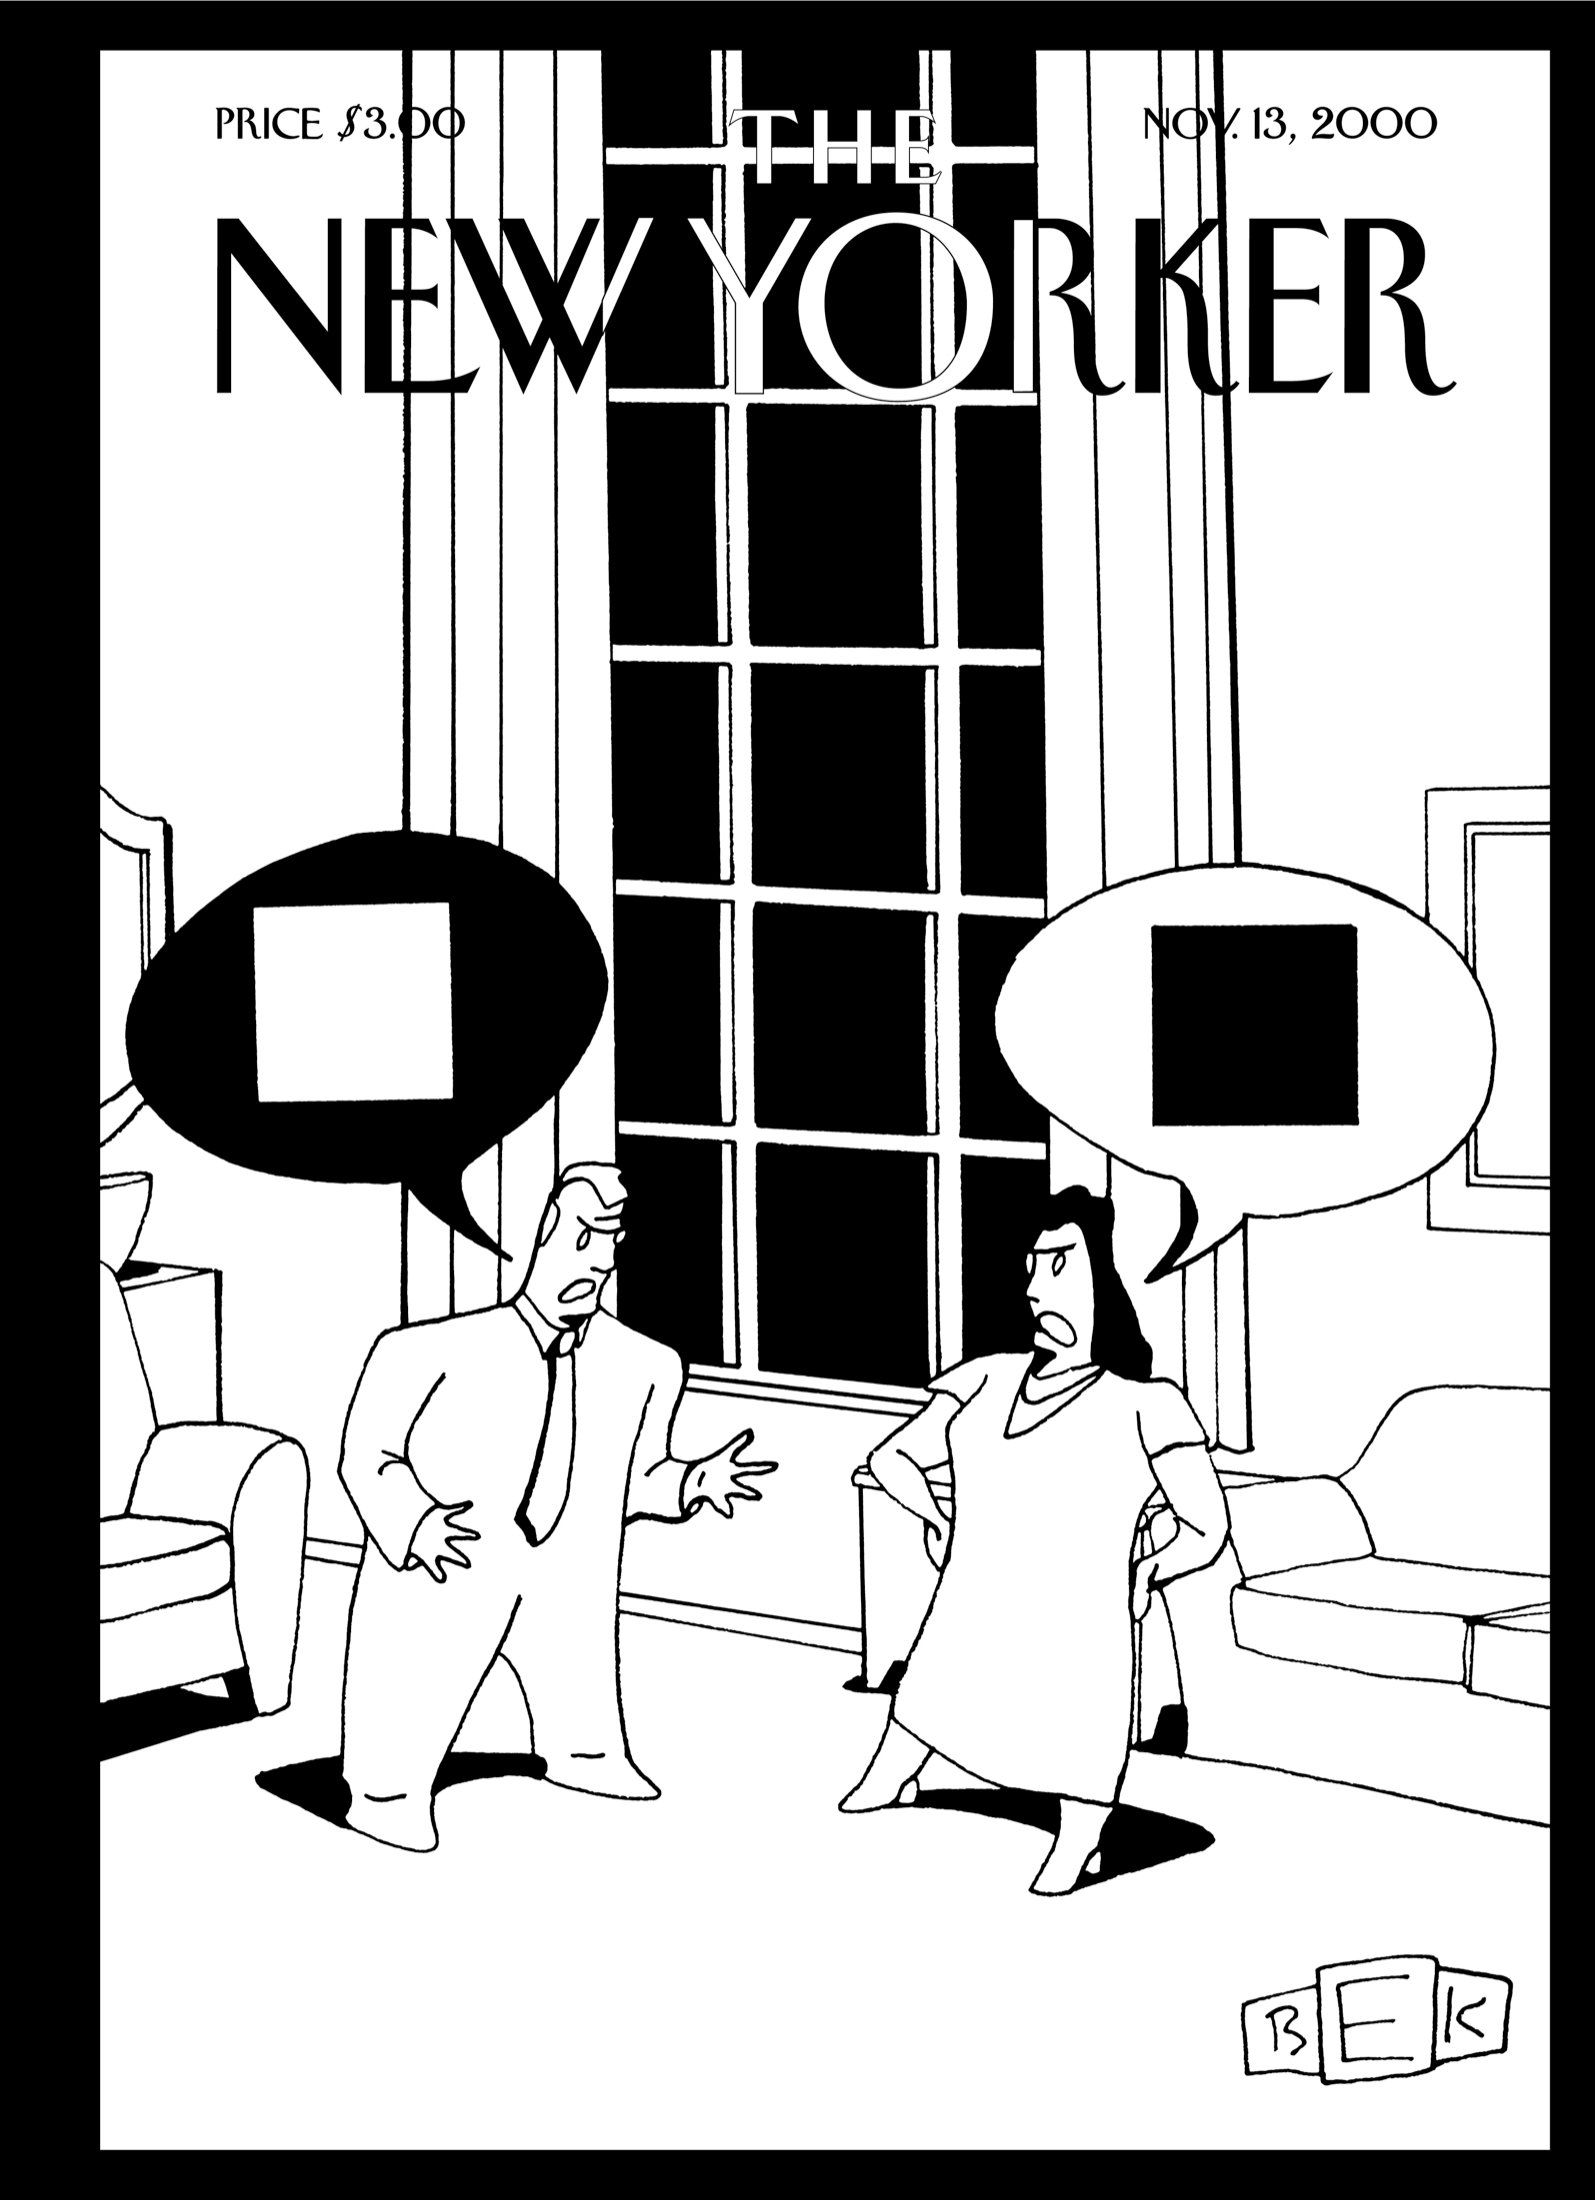 "The New Yorker - Monday, November 13, 2000 - Issue # 3912 - Vol. 76 - N° 34 - « The Cartoon Issue » - Cover ""Irreconcilable Differences"" by Bruce Eric Kaplan"